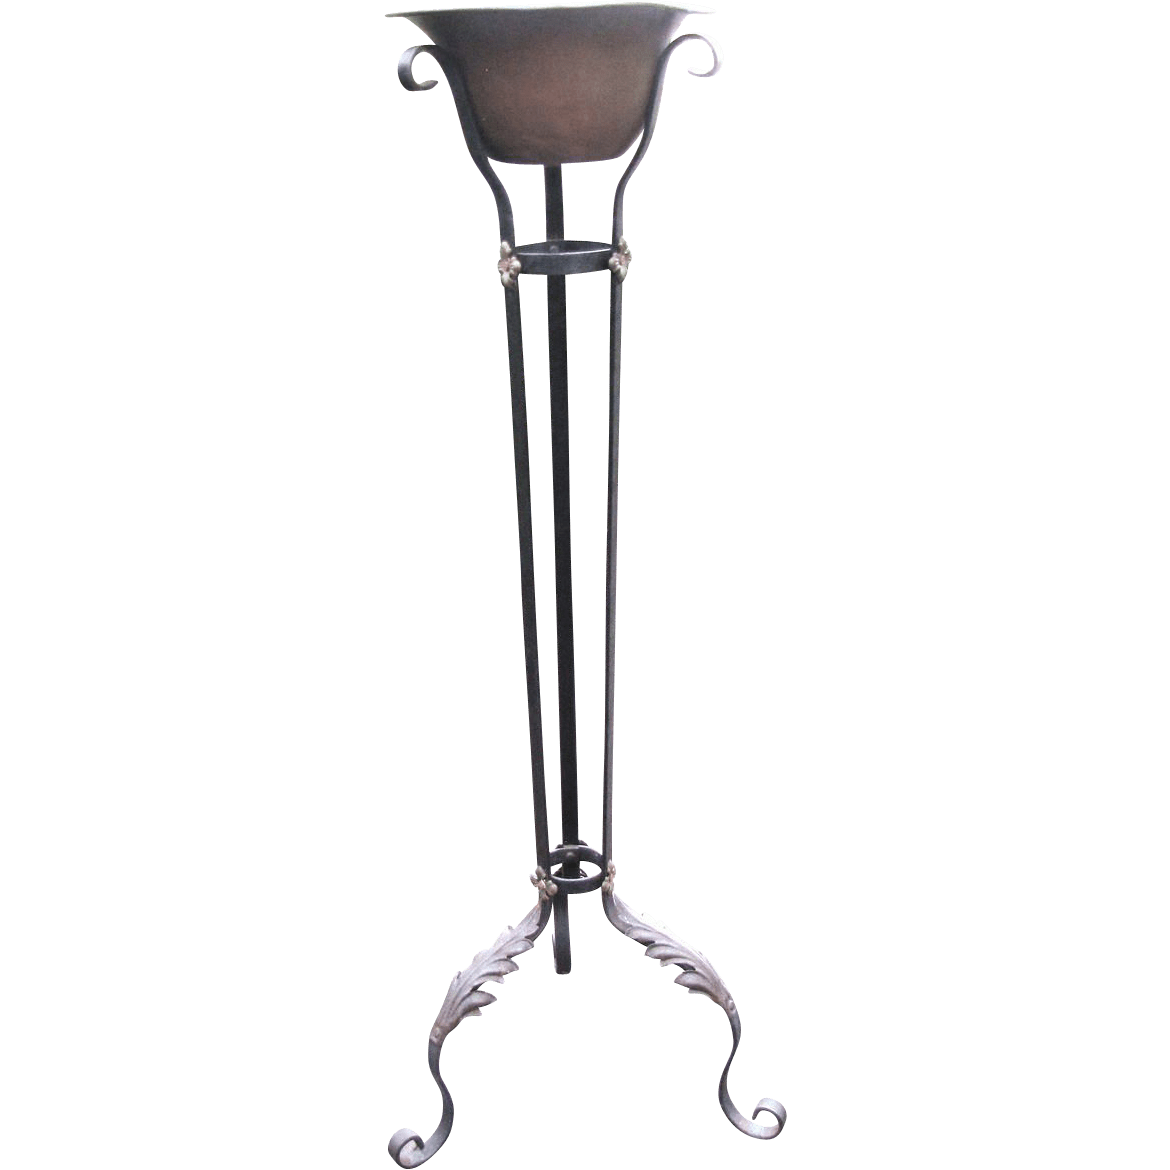 Tall Wrought Iron Plant Stands Antique Wrought Iron Plant Stand Original Poly Chrome